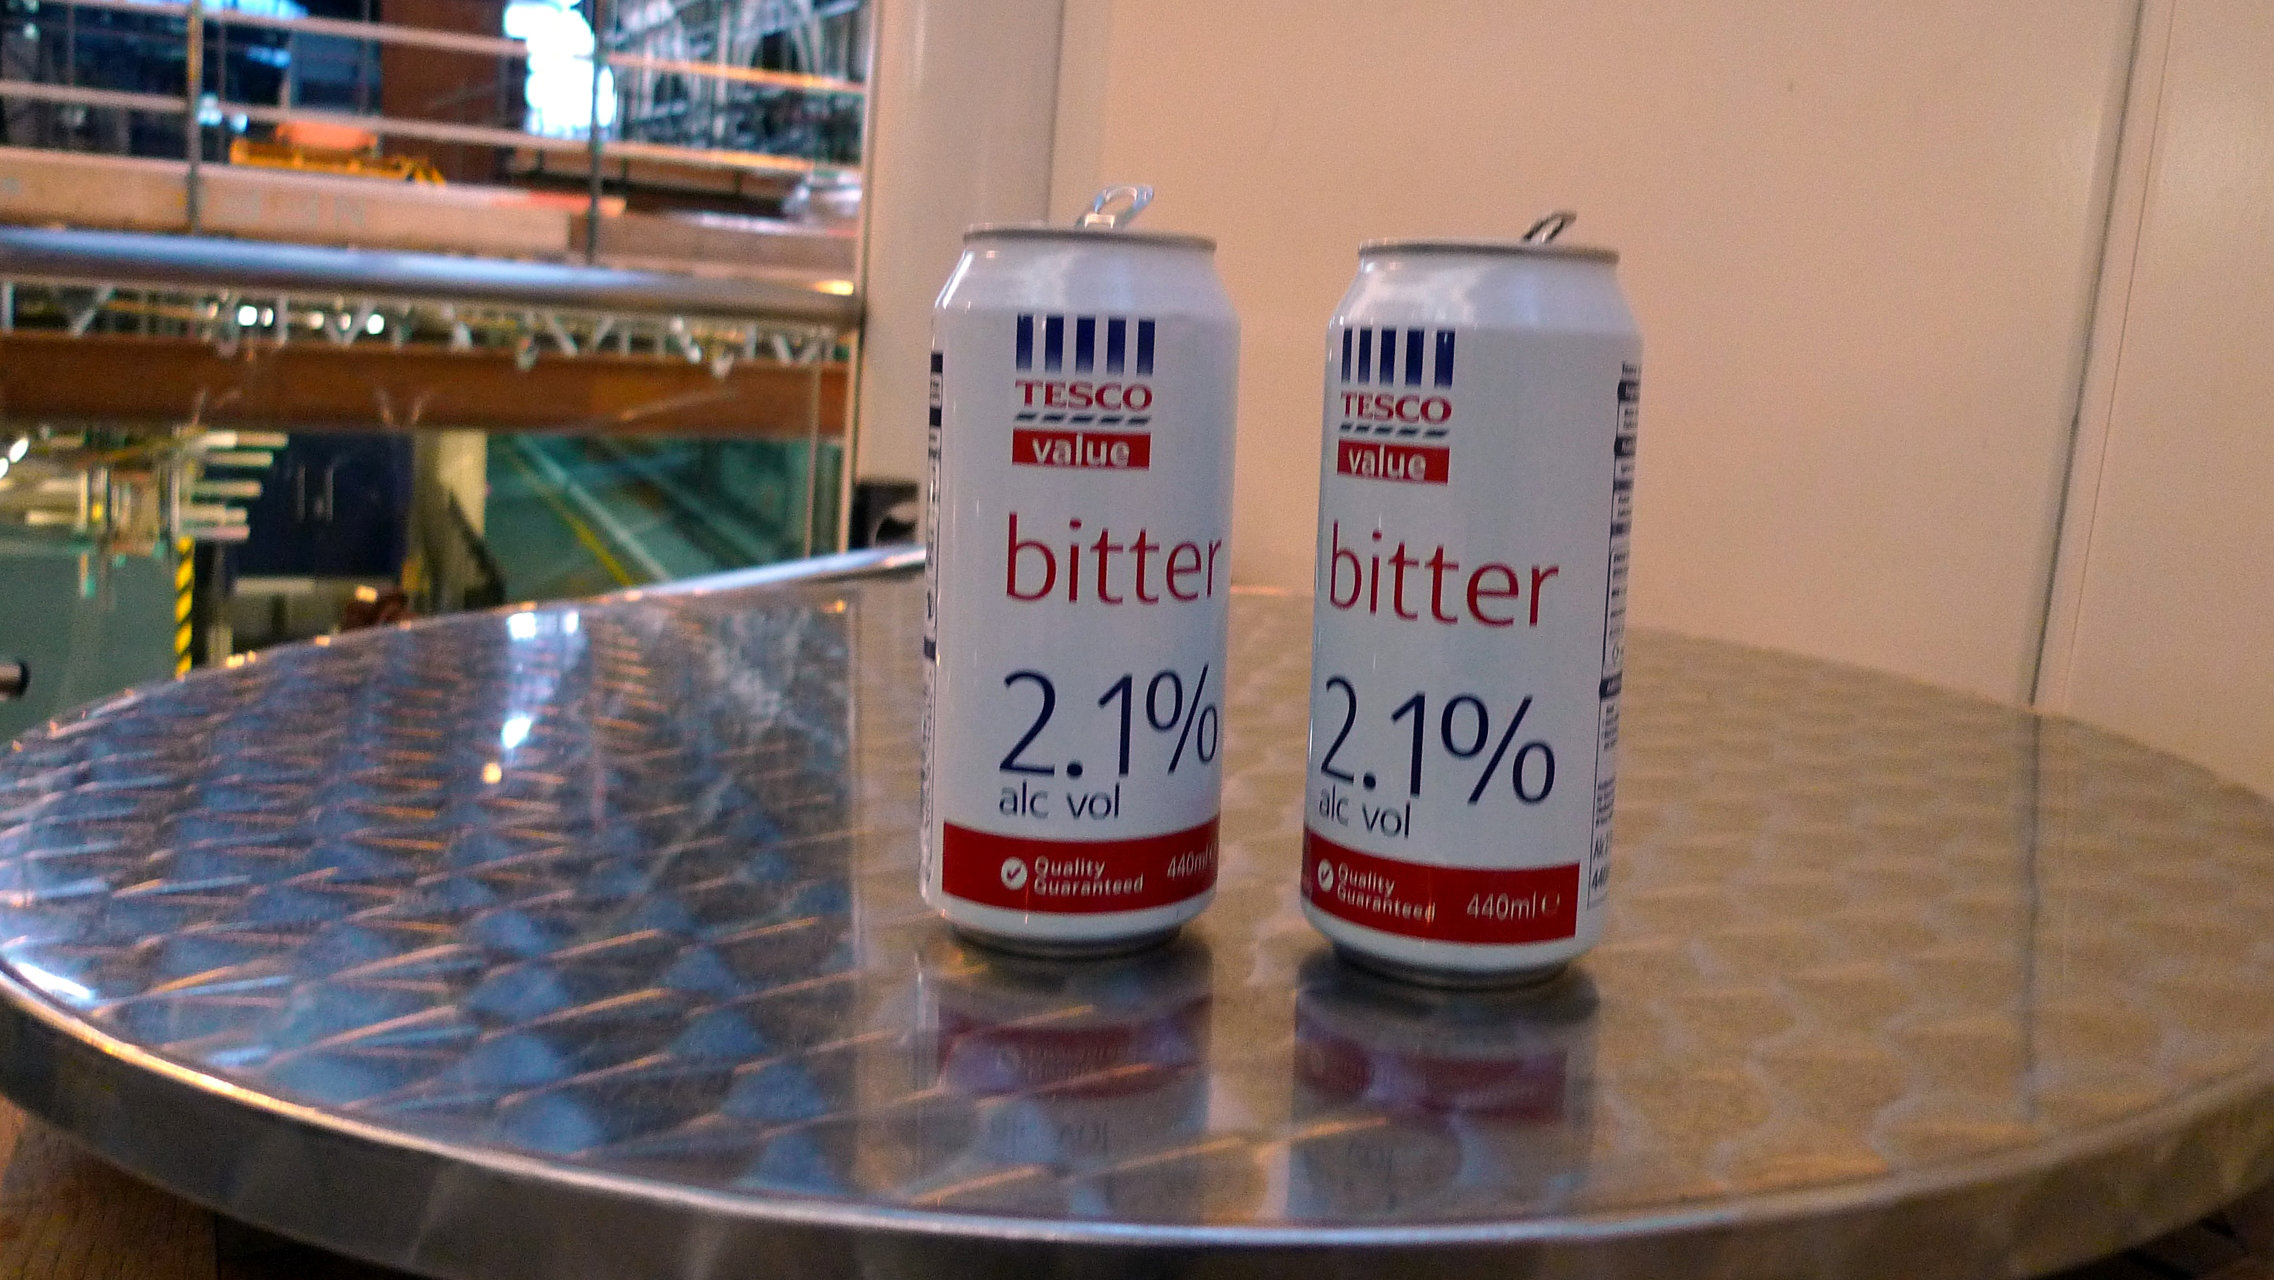 Cans of Tesco Value bitter beer.